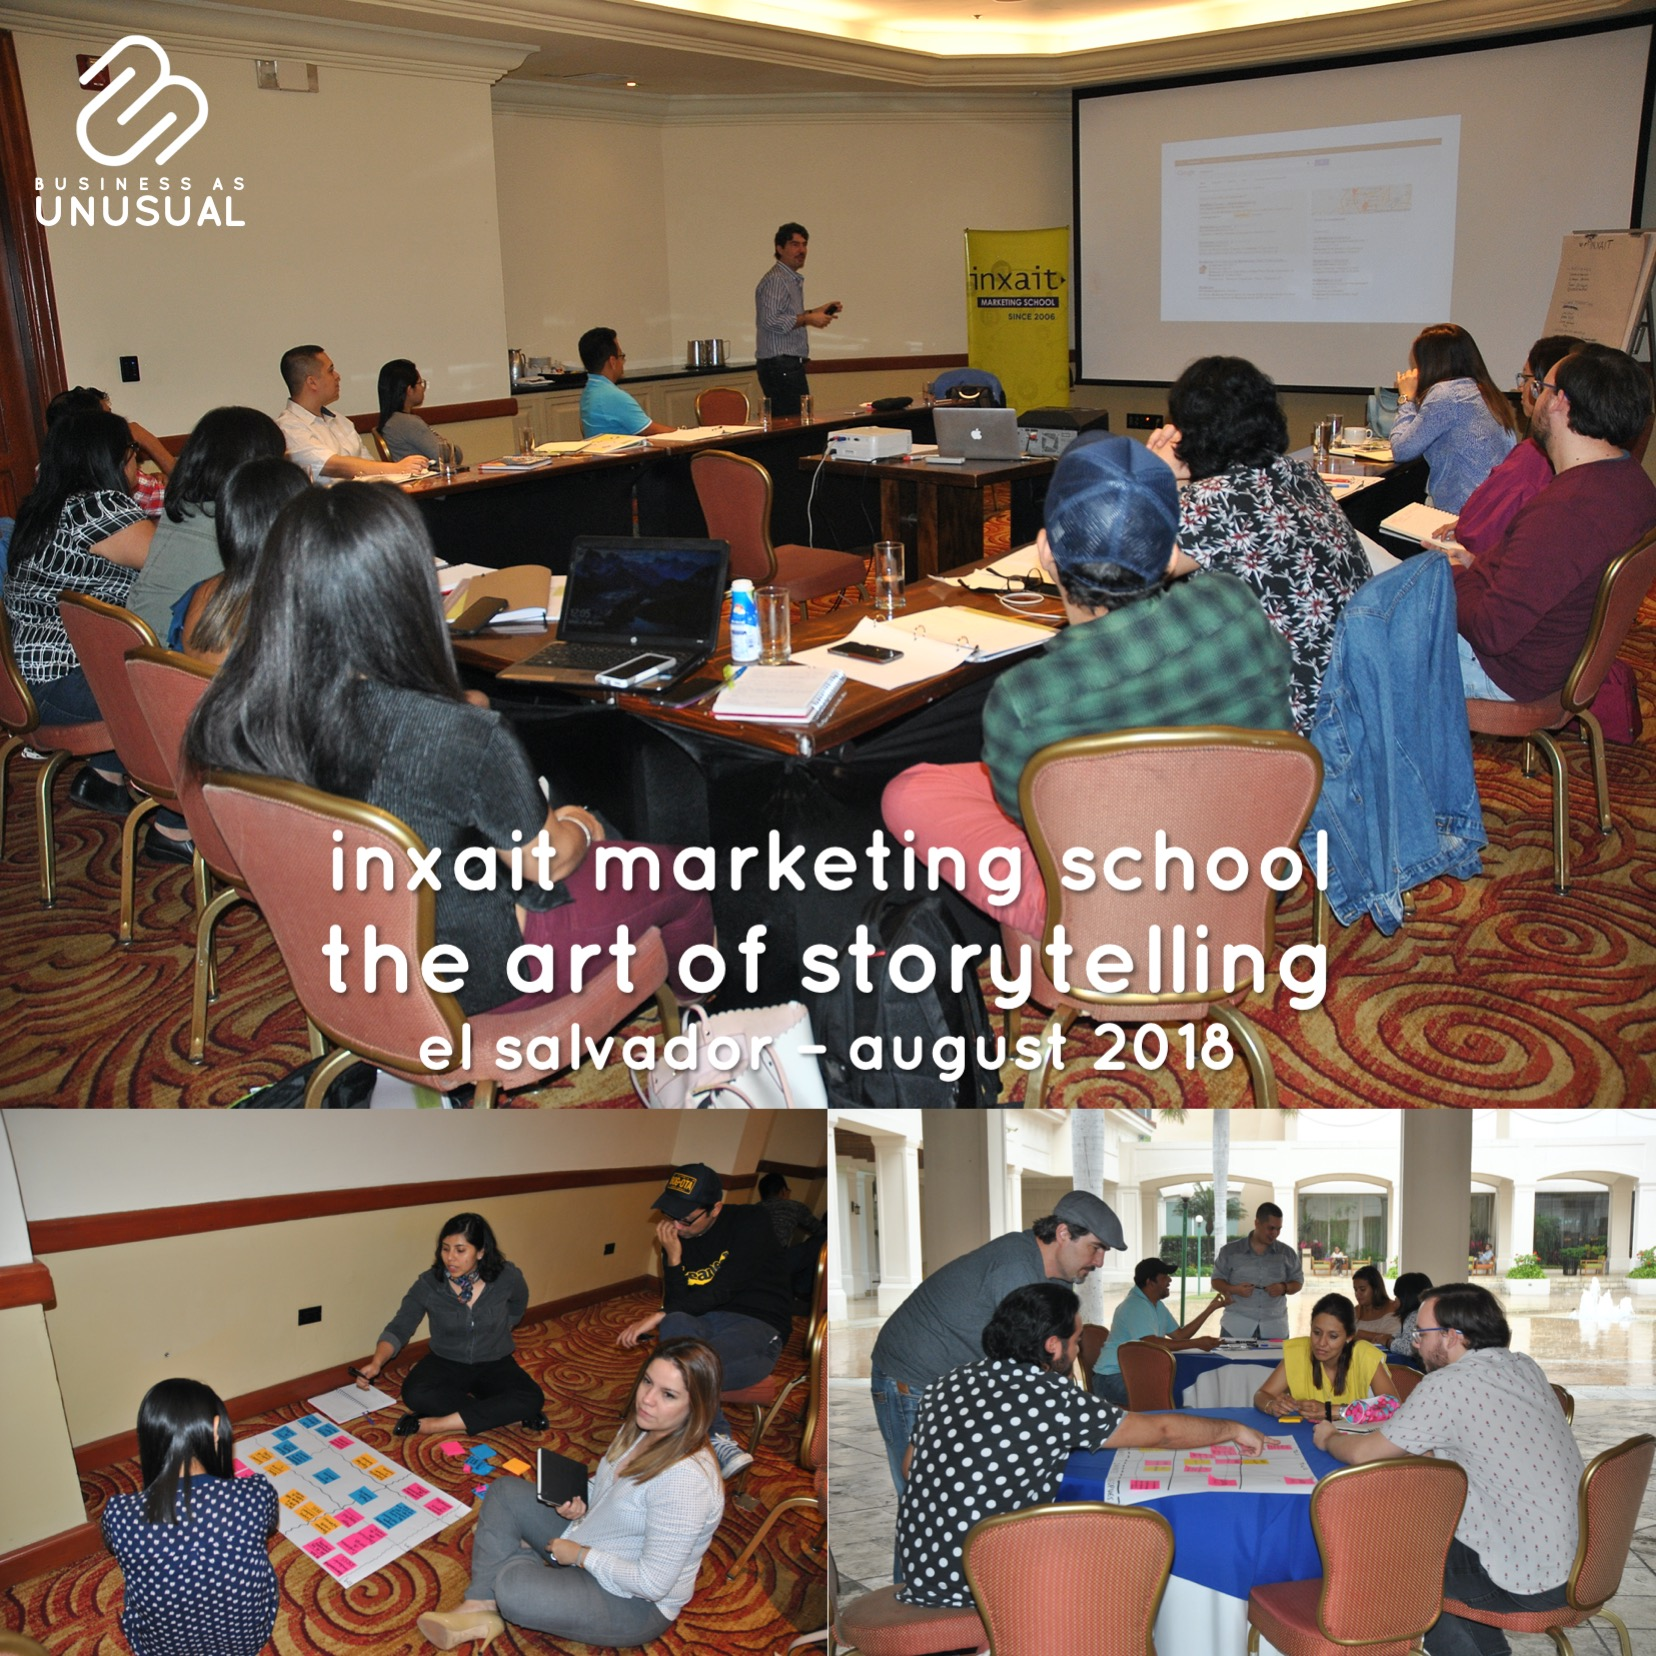 INXAIT Marketing School - The Art of Storytelling